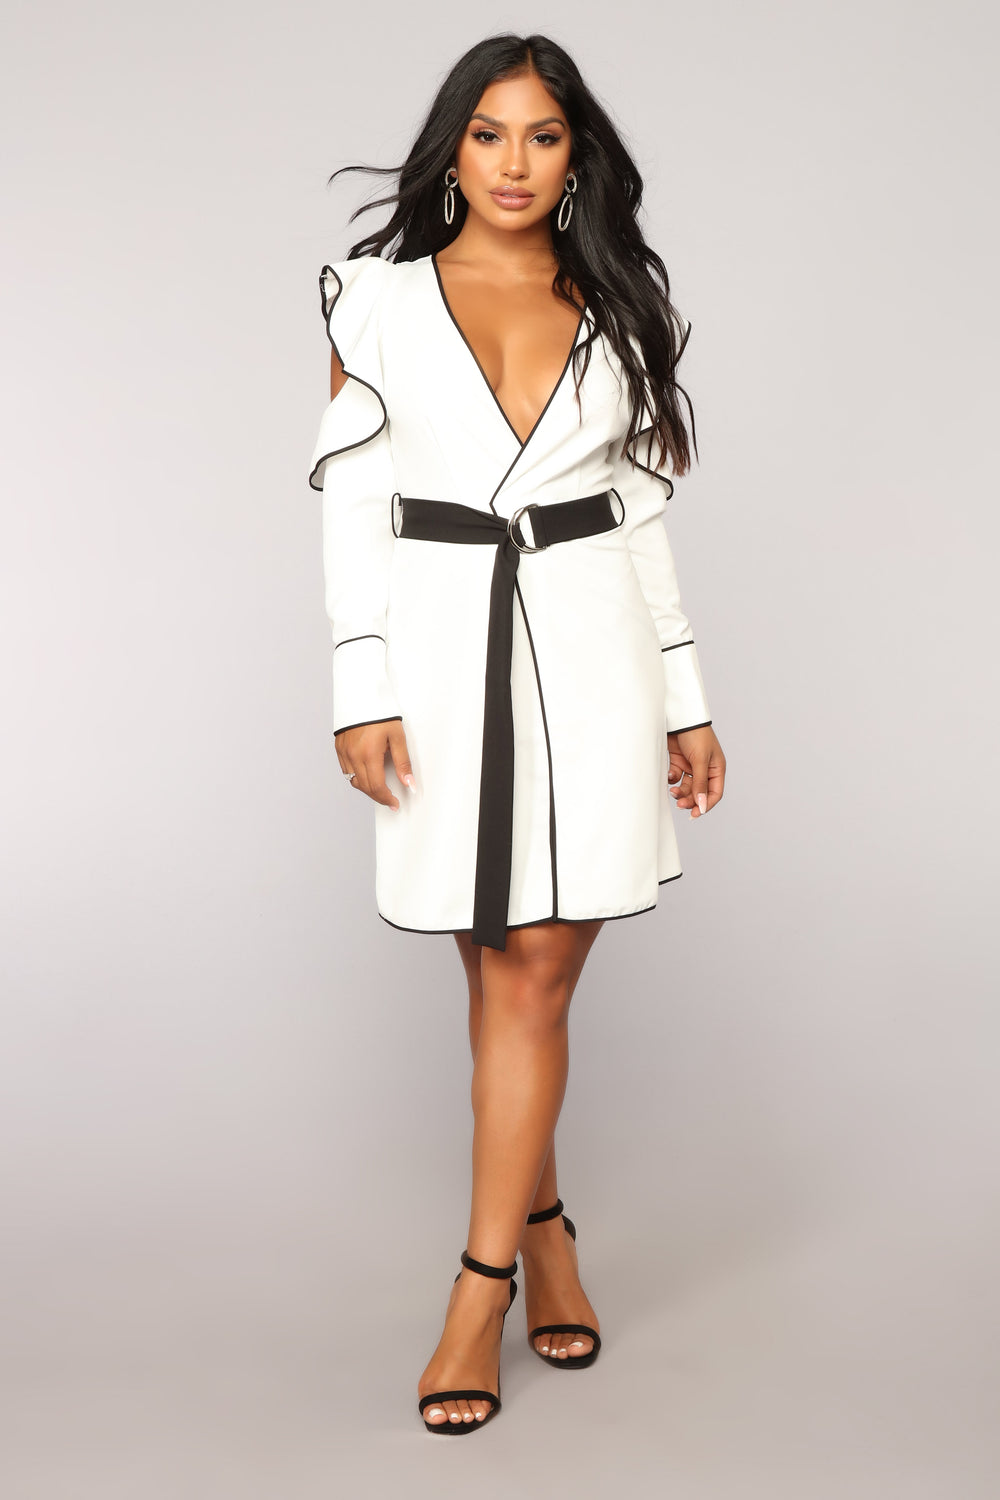 Seasons Of Love Dress - White